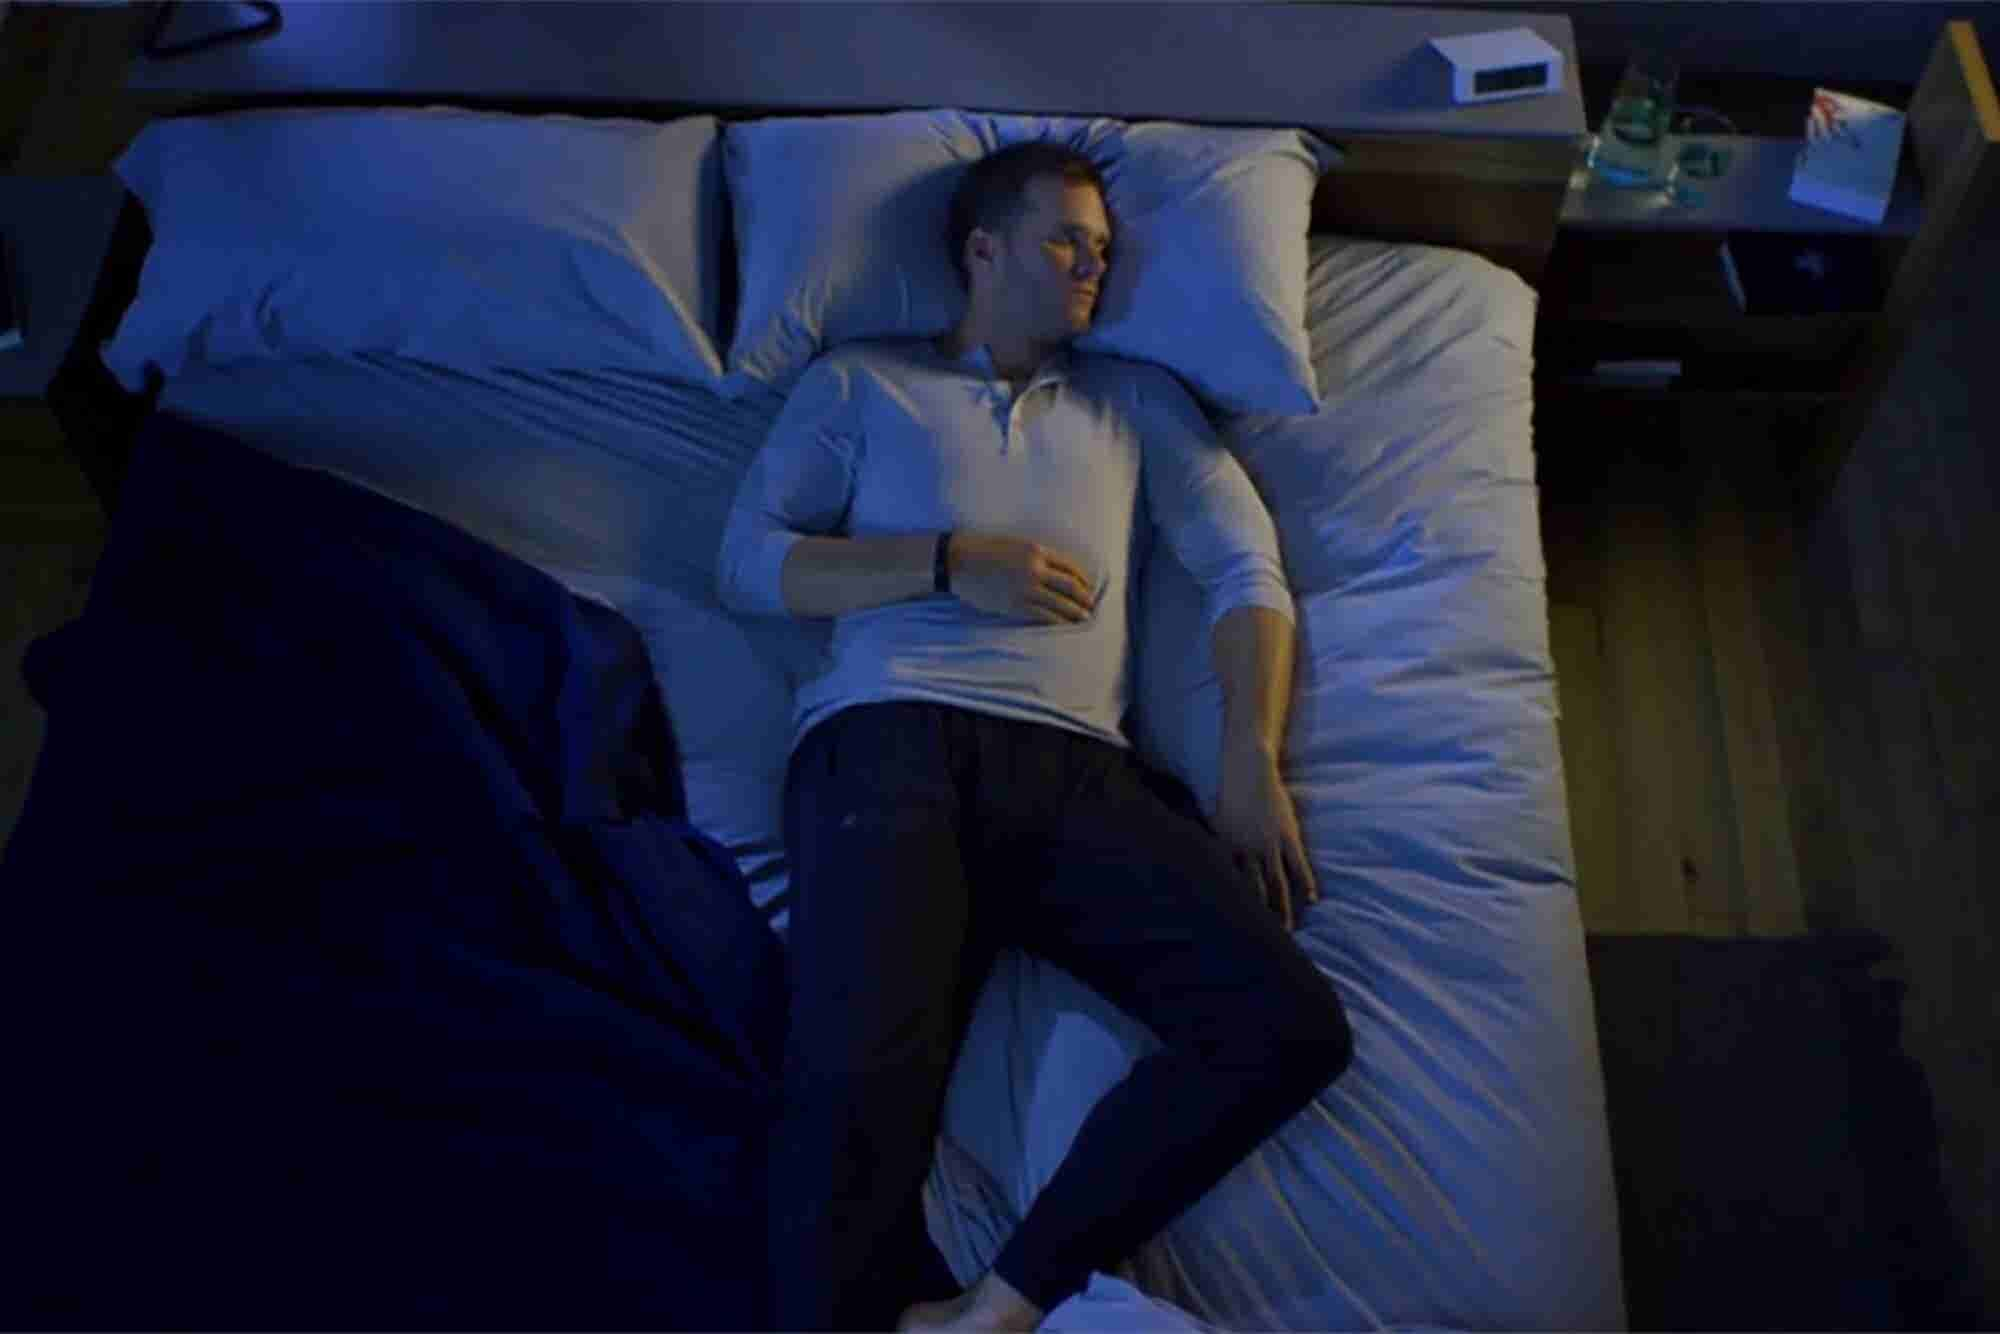 A Pillow That Naturally Wakes You Up in the Morning and 13 Other Gadgets to Help You Sleep Better